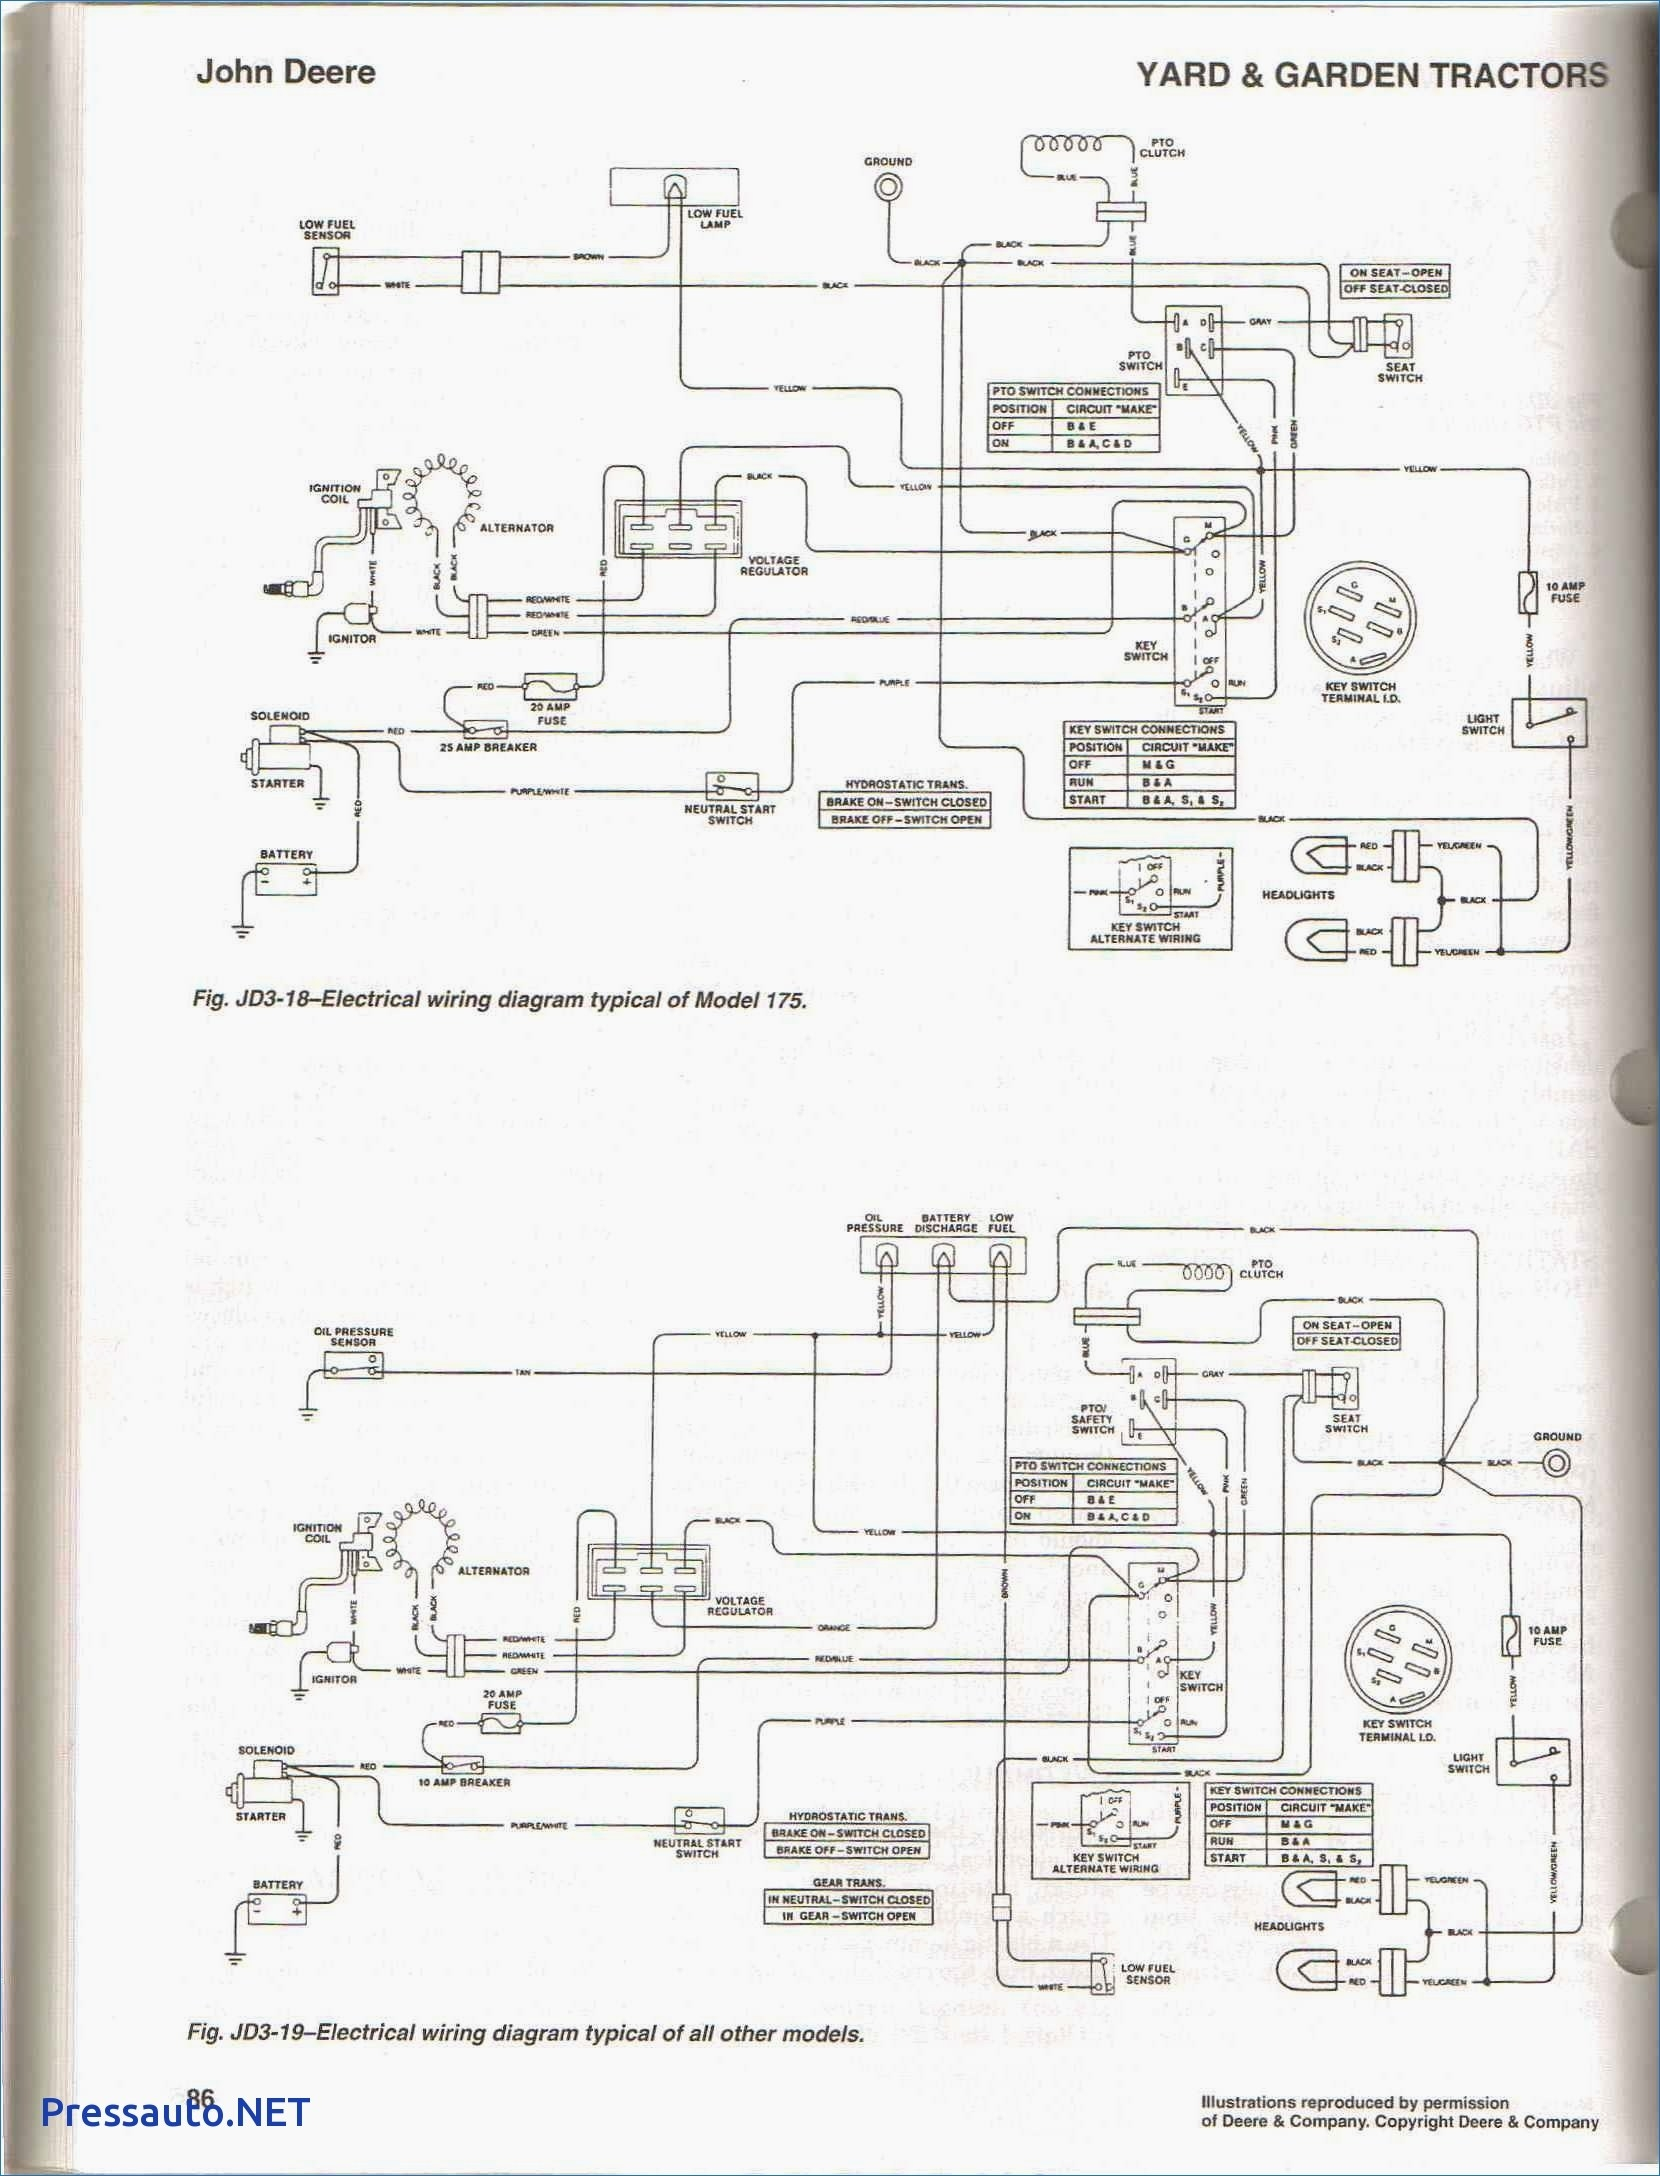 jeron intercom wiring diagram Collection-Jeron Inter Wiring Diagram Elegant Terrific Pacific 3404 Inter Wiring Schematic Contemporary 18-l